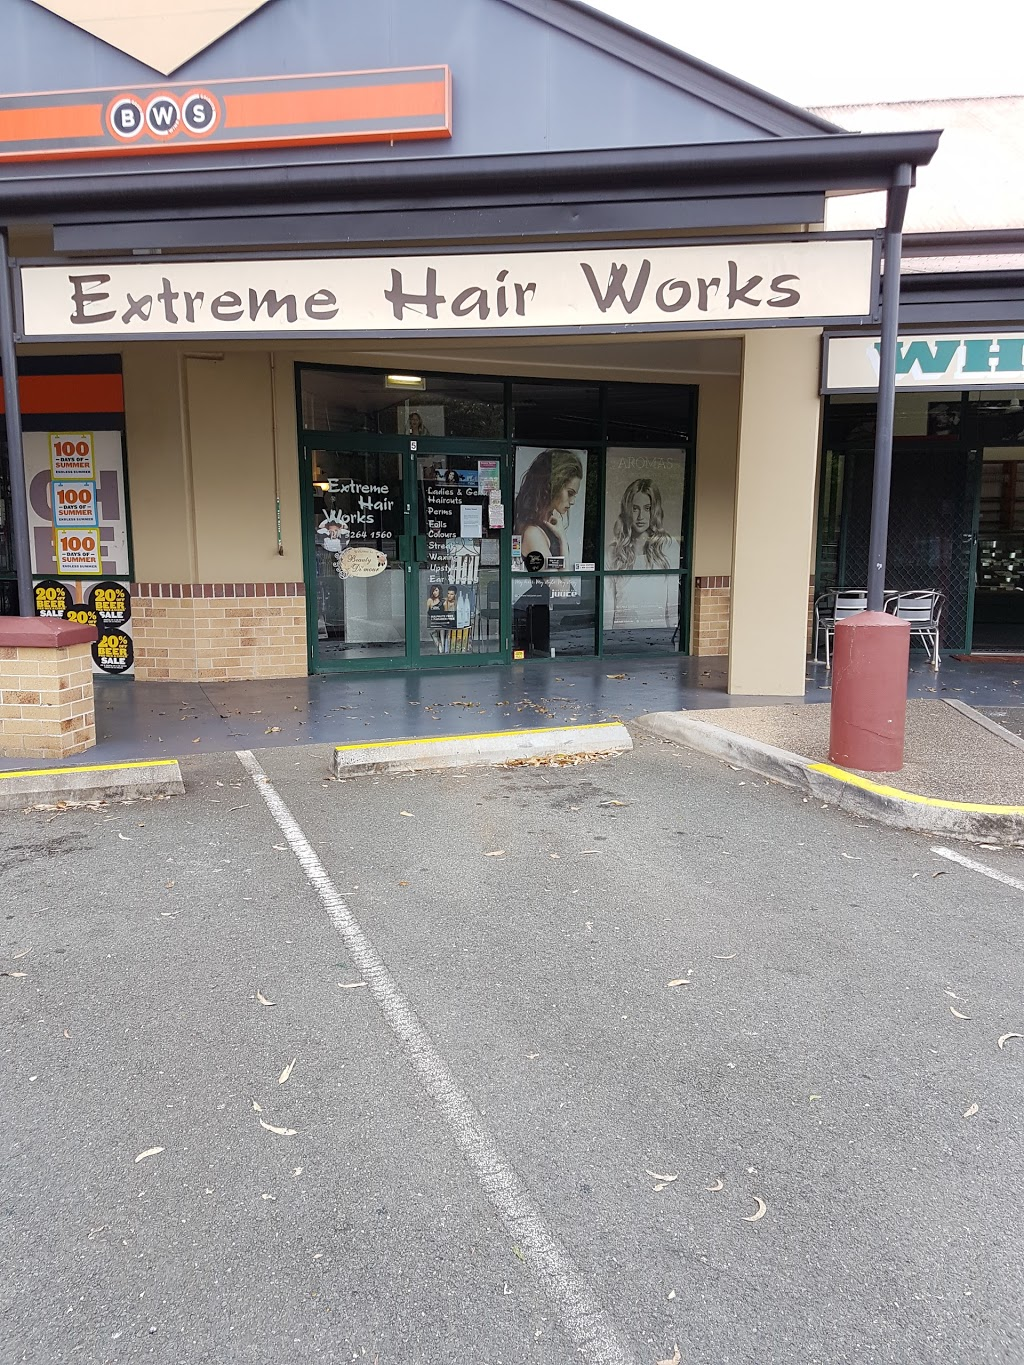 Extreme Hair Works | hair care | 5/1 Queen Elizabeth Dr, Eatons Hill QLD 4037, Australia | 0732641560 OR +61 7 3264 1560